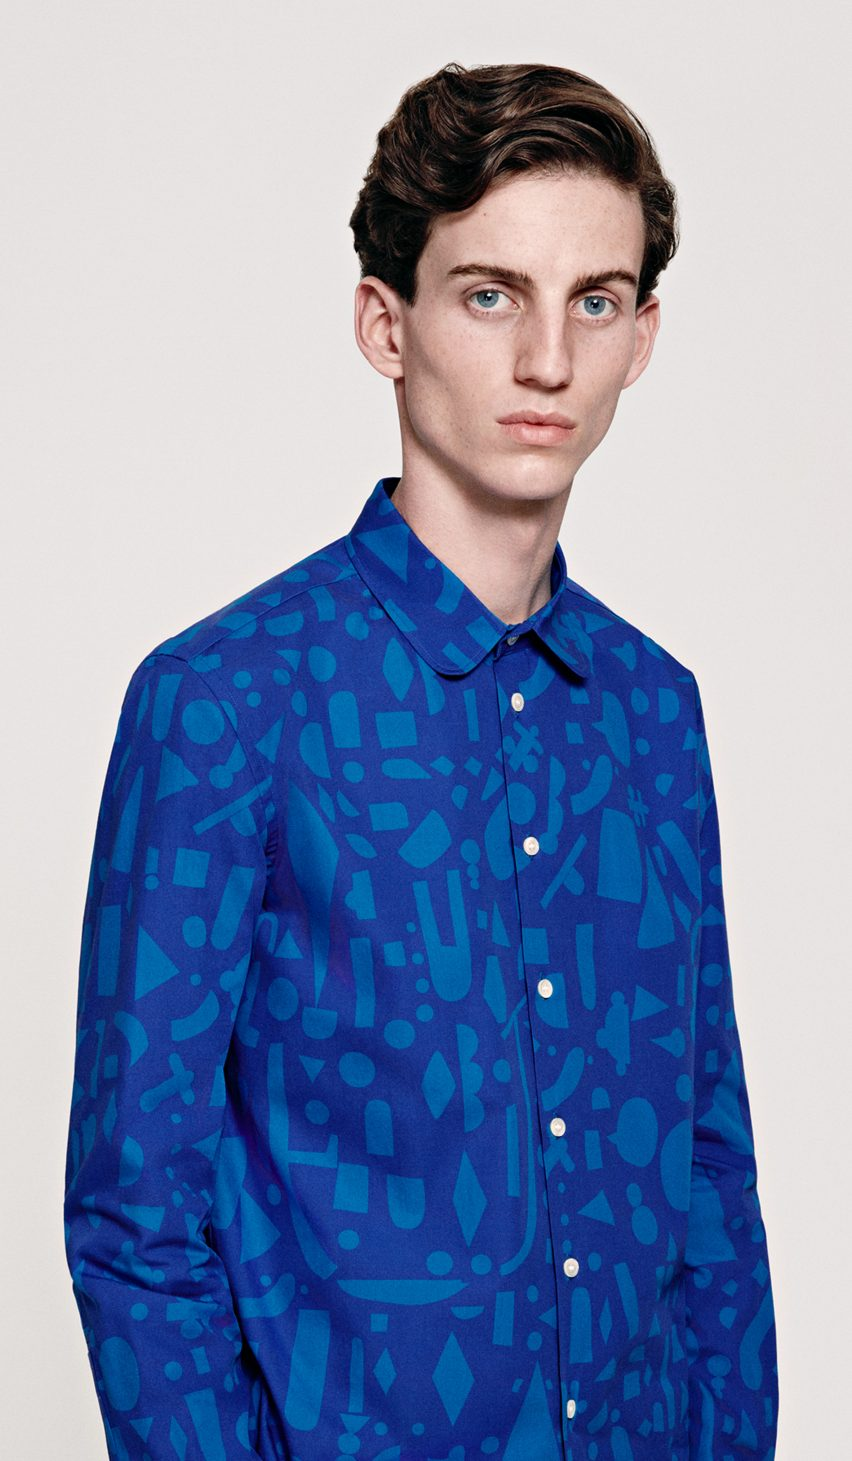 for the inaugural collection items hayn has applied his playful graphic style to prints and embroidery u decorating shirts with geometric shapes